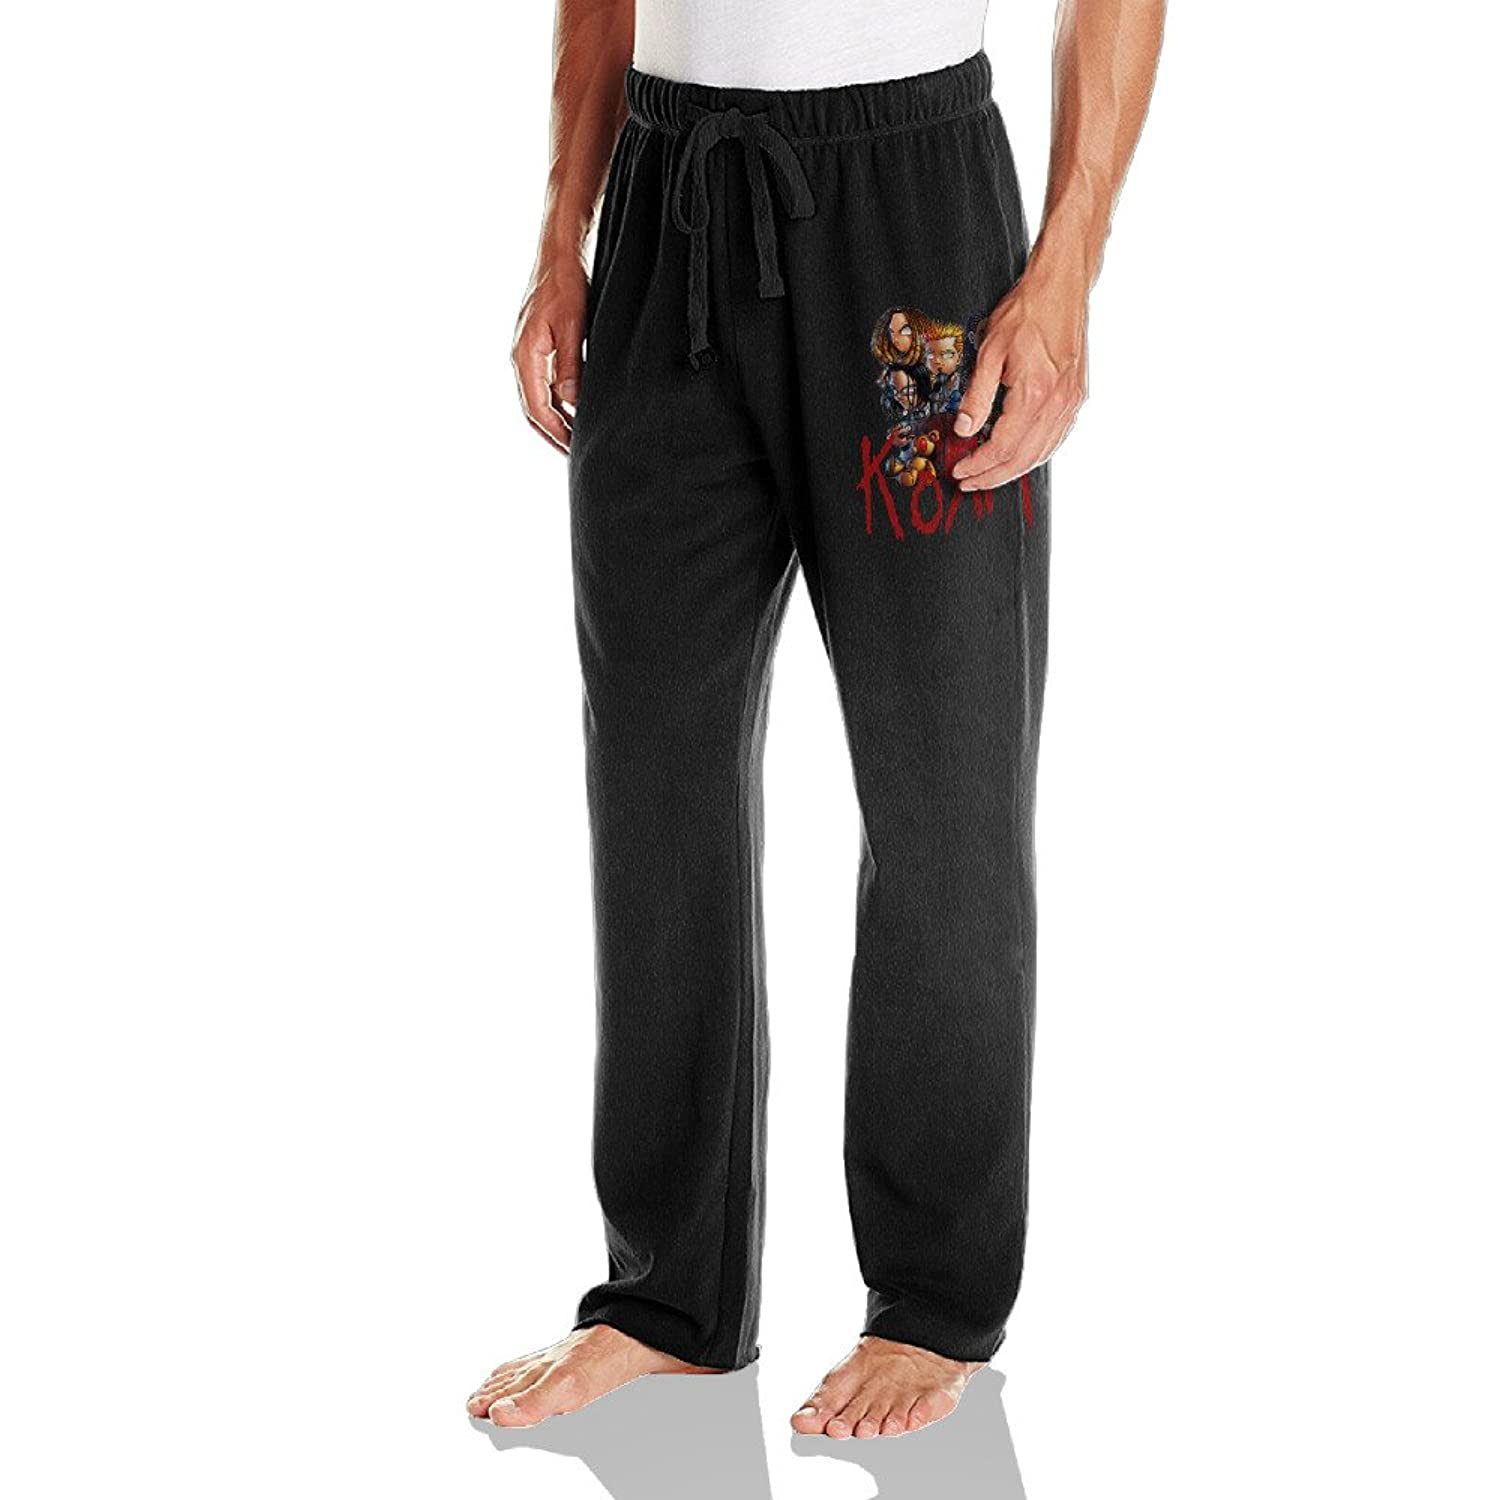 Korn Sports Sweatpants For Mans Black